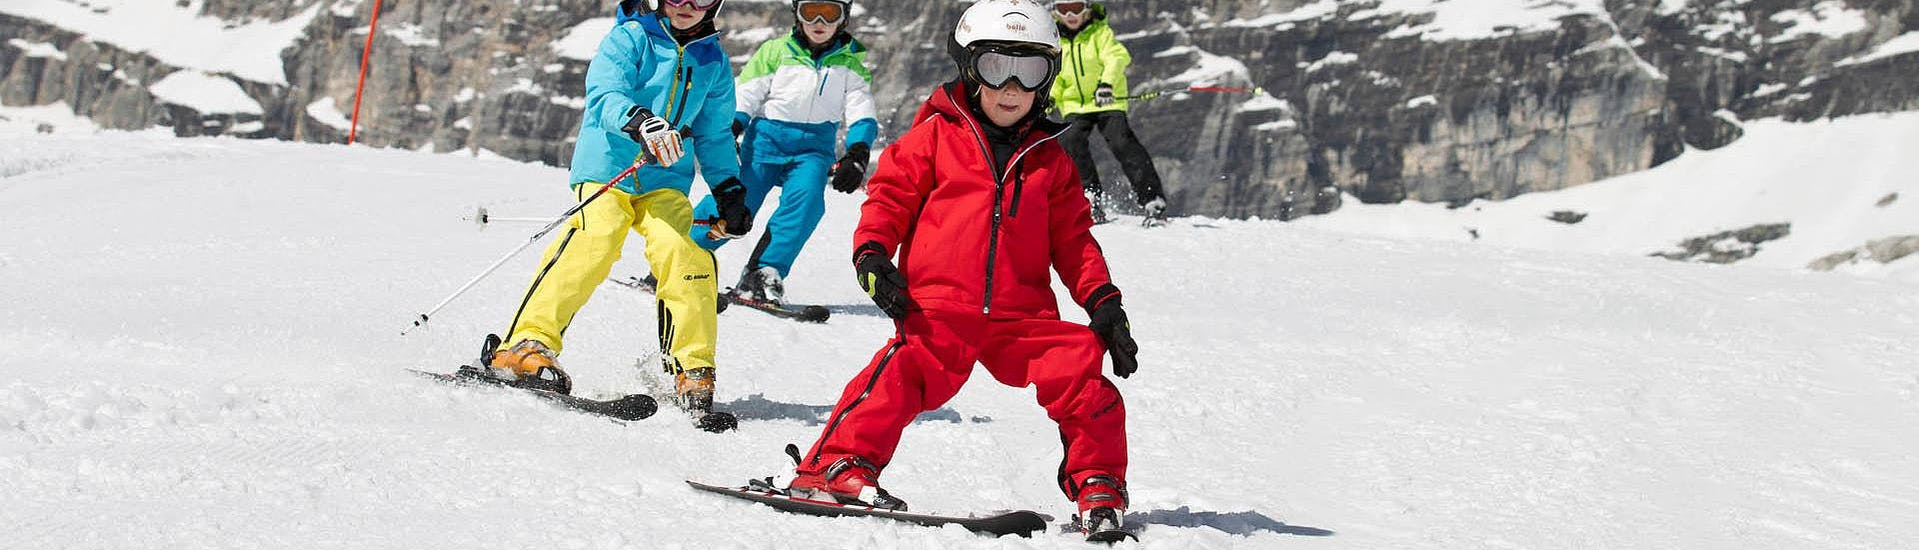 """Trial Lessons """"Snukiland"""" (3-6 years) with Skischule Egon Hirt - Hero image"""